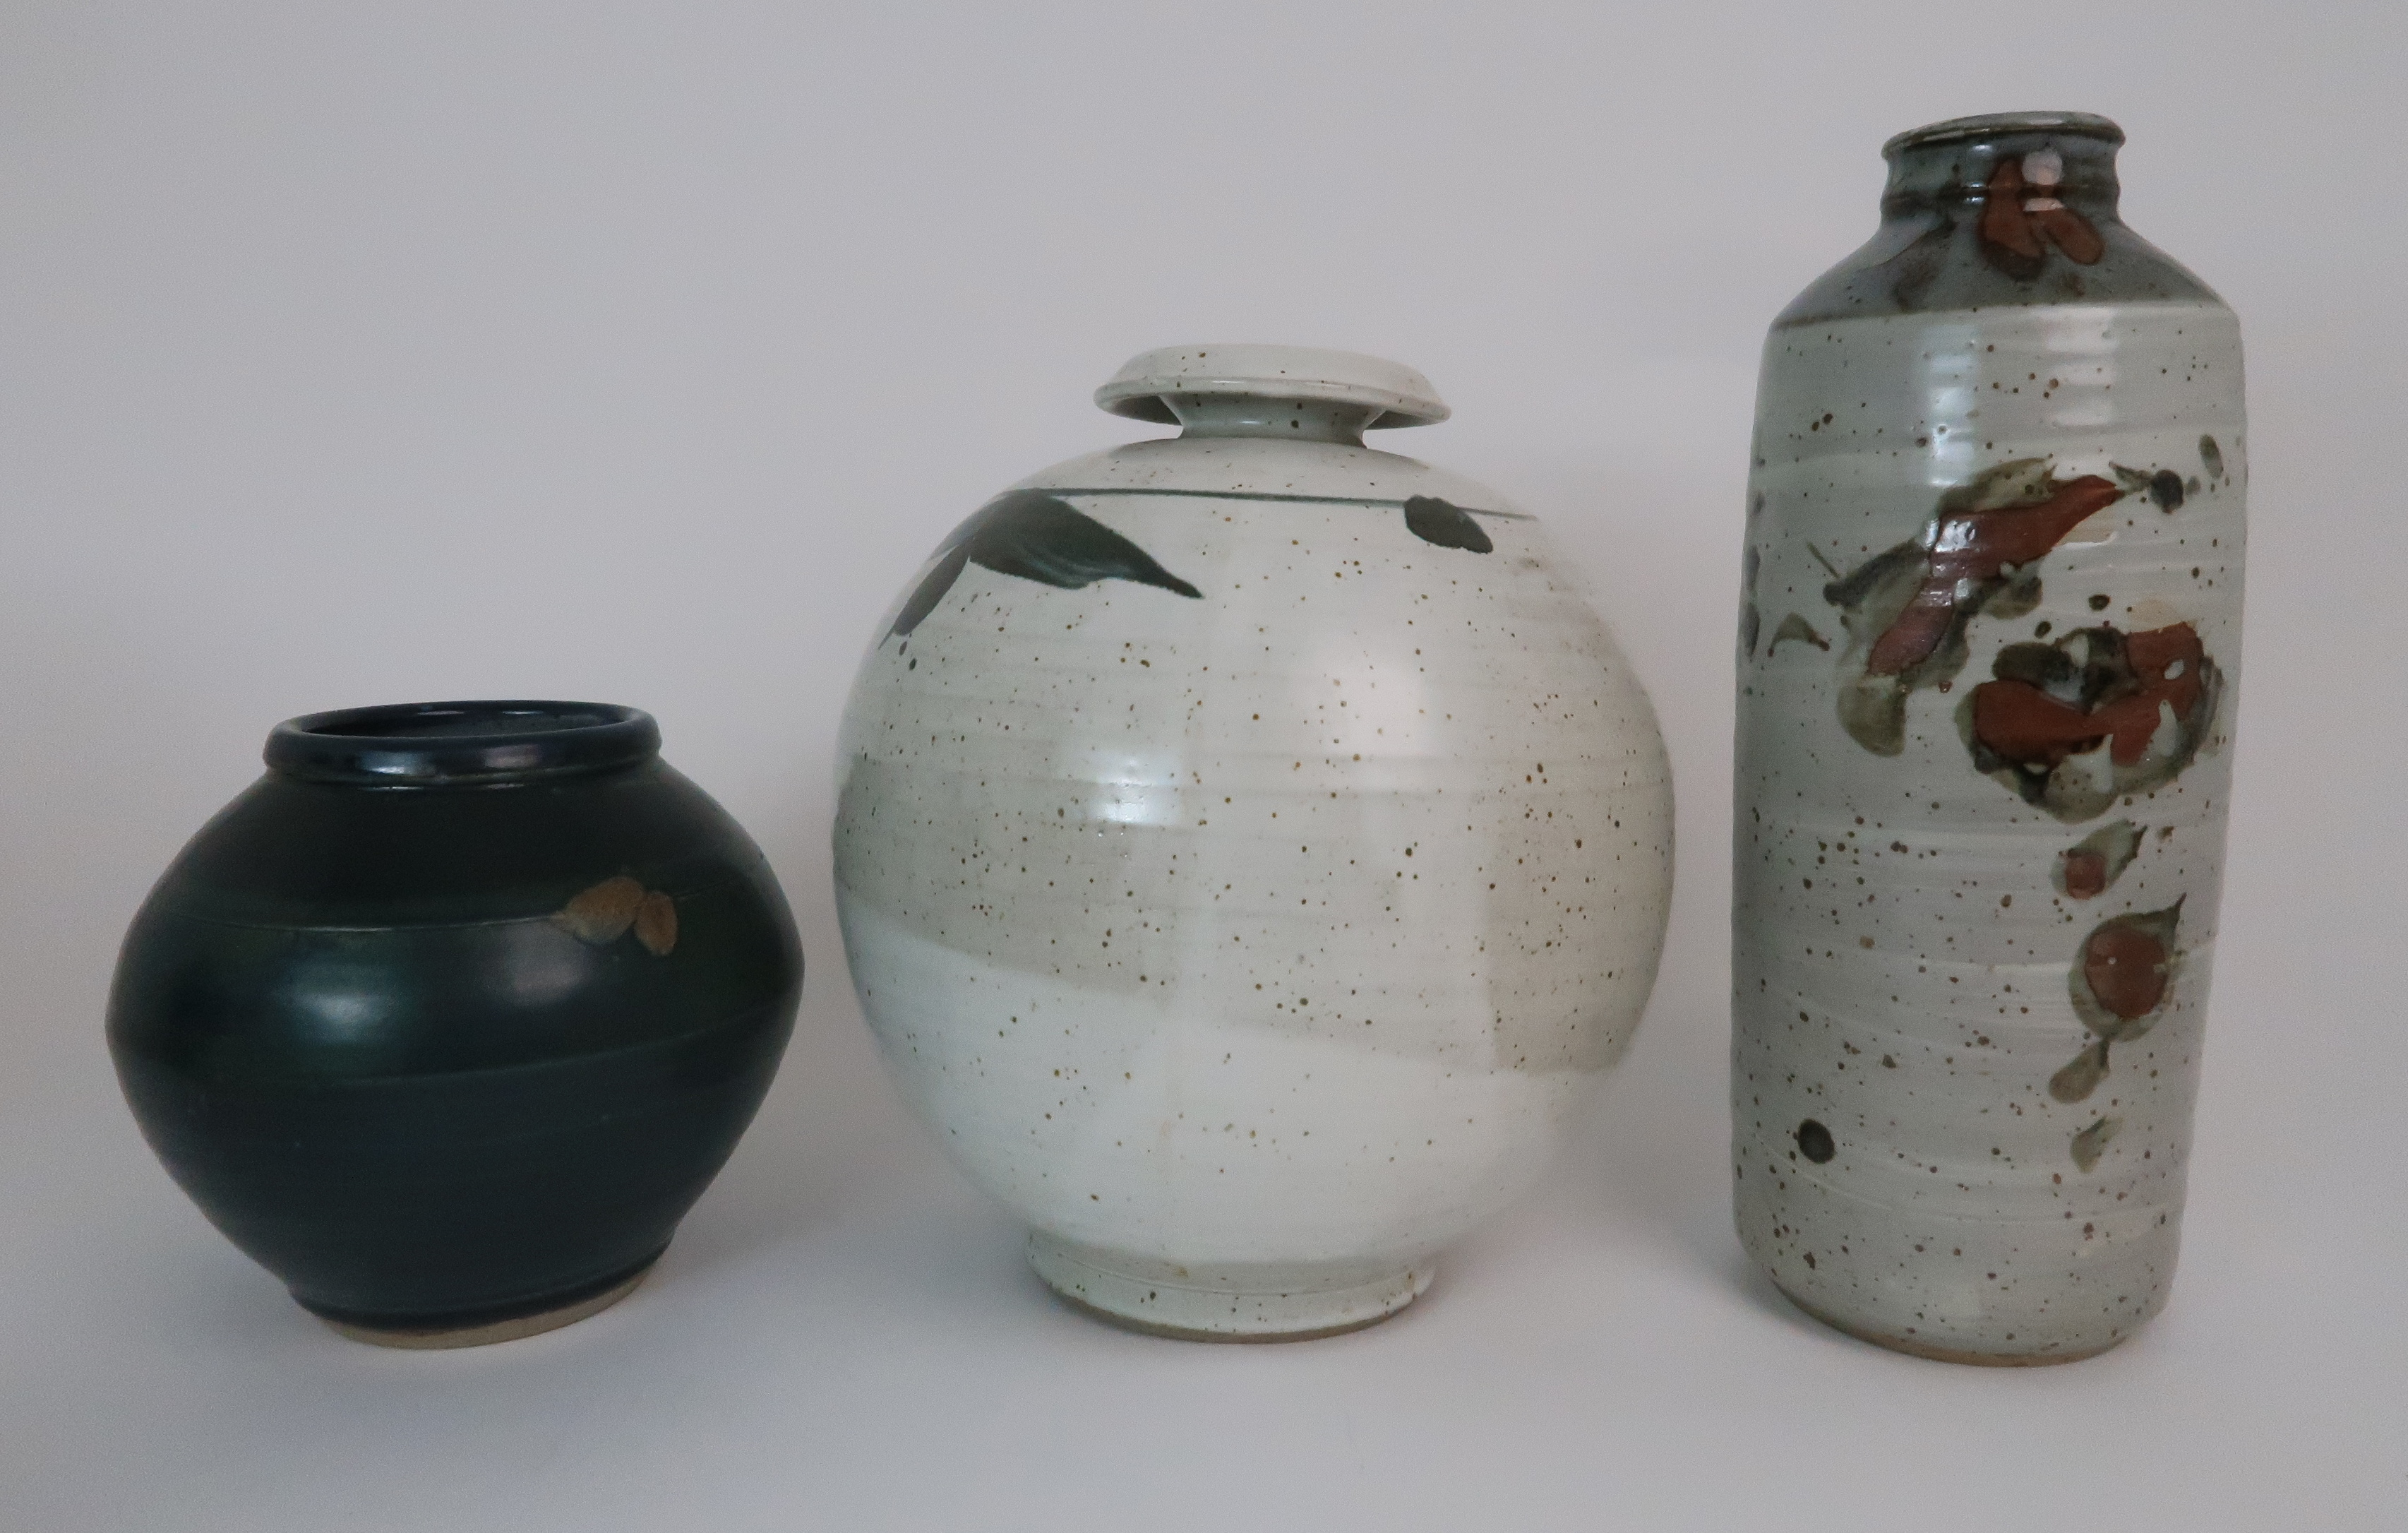 GEORGE SHANKS (1940-2000) - A COLLECTION OF STUDIO POTTERY including a glazed tall vase, 33cm - Image 3 of 15